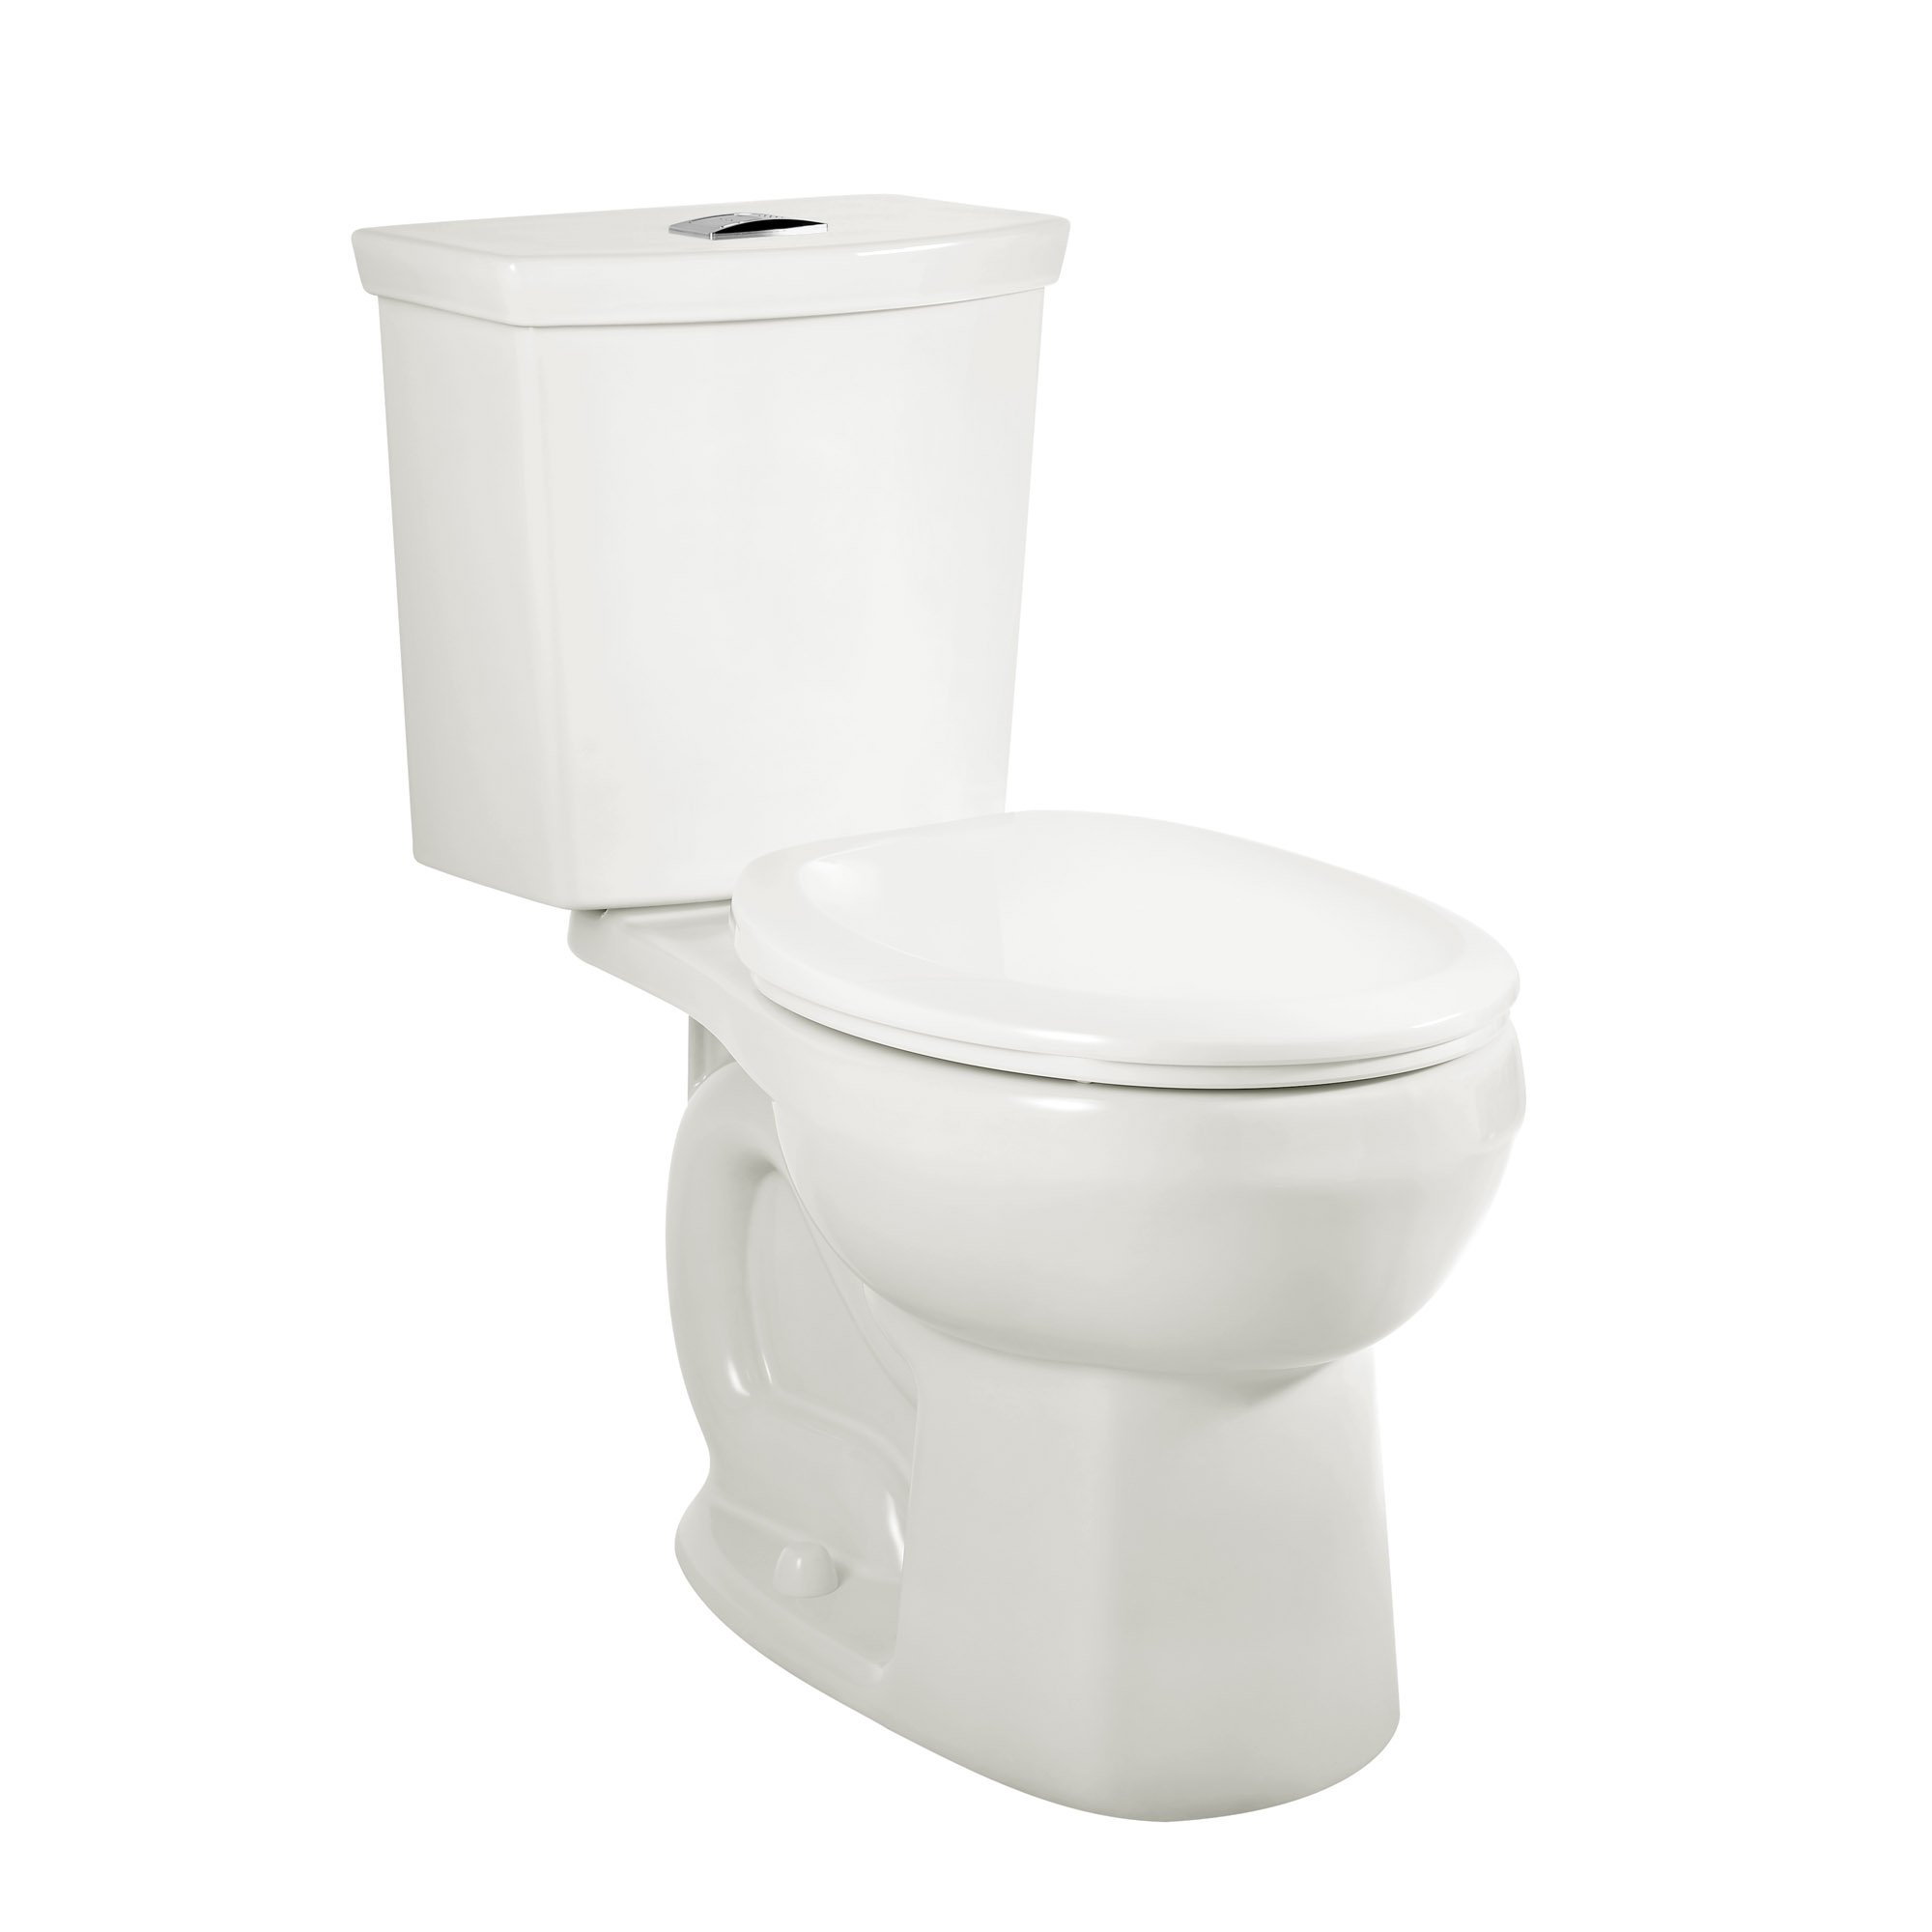 American Standard 2889518.020 H2Option Siphonic Dual Flush Normal Height Round Front Toilet with Liner, White, 2-Piece